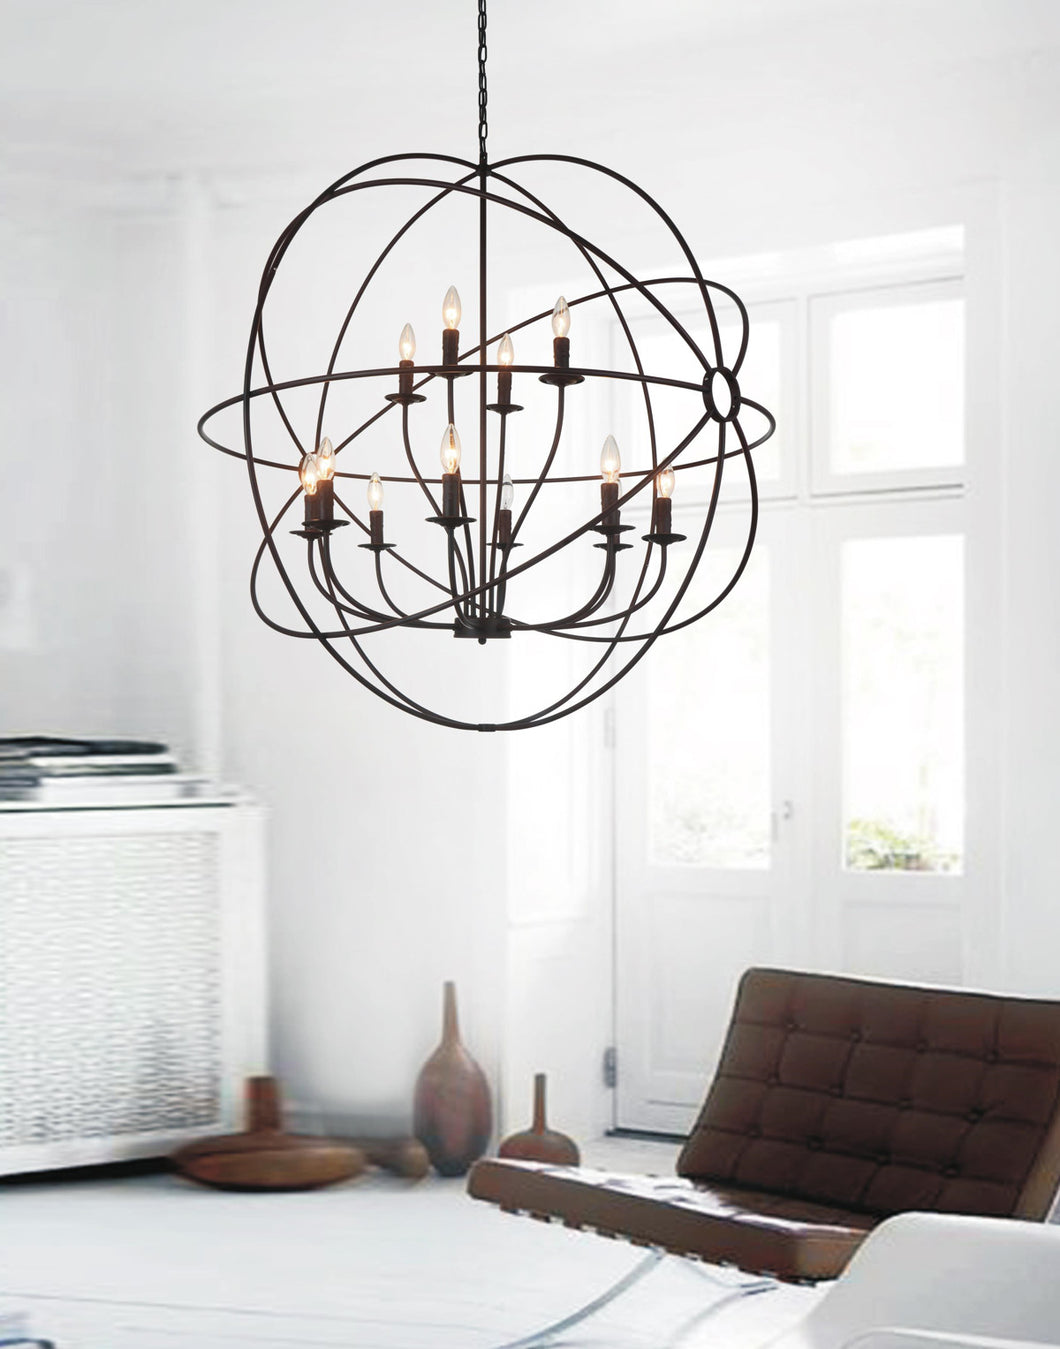 12 Light Up Chandelier with Brown finish